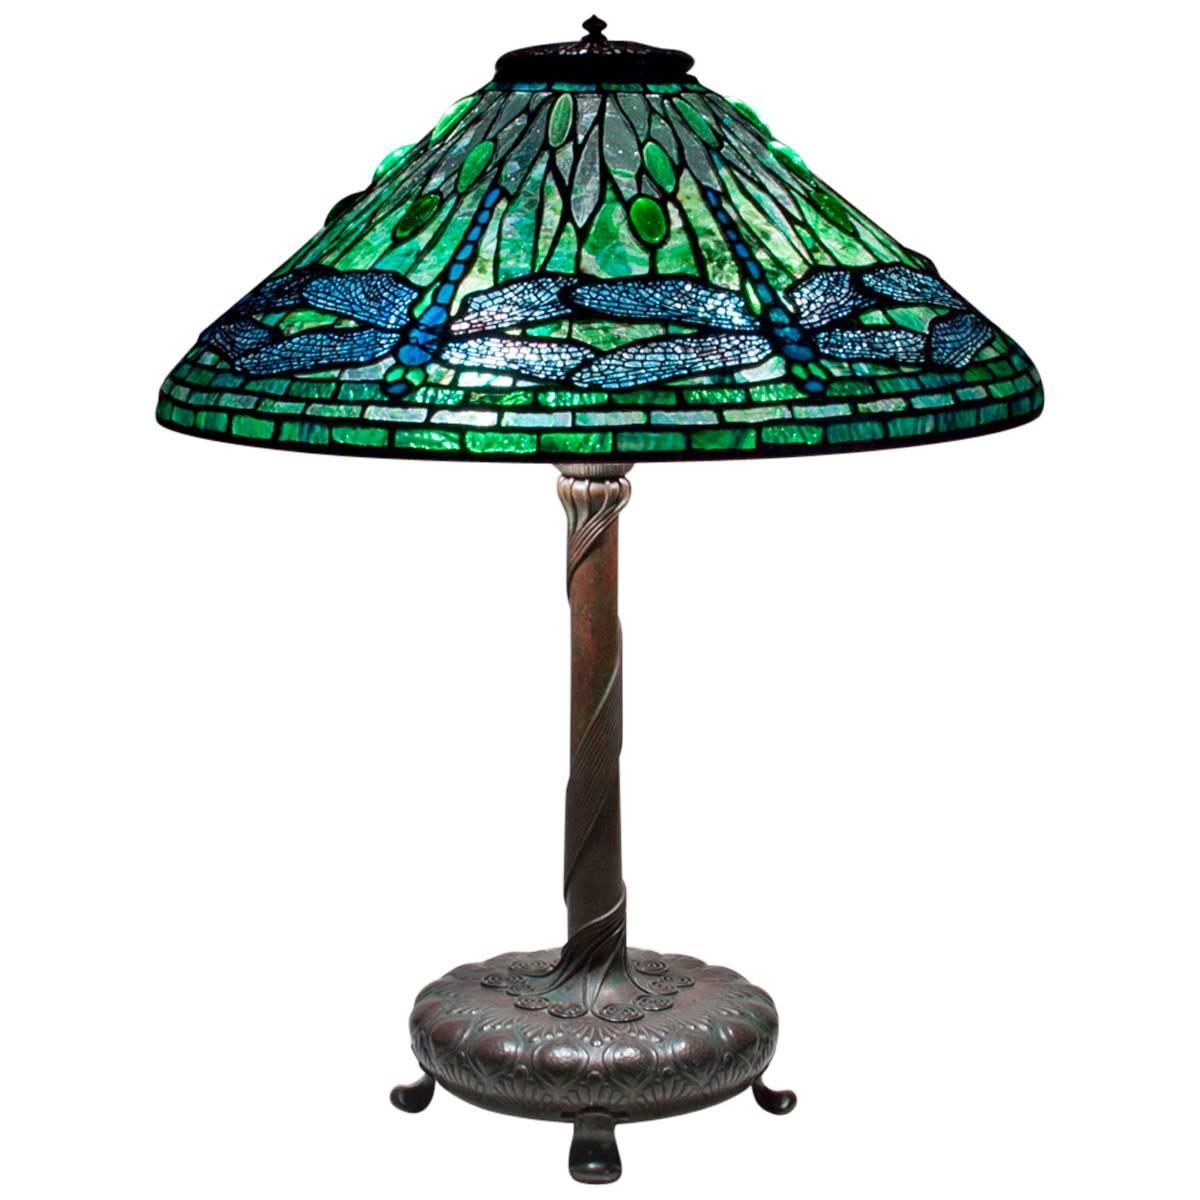 Tiffany studios 39 dragonfly 39 table lamp at 1stdibs - Chandelier desk lamp ...